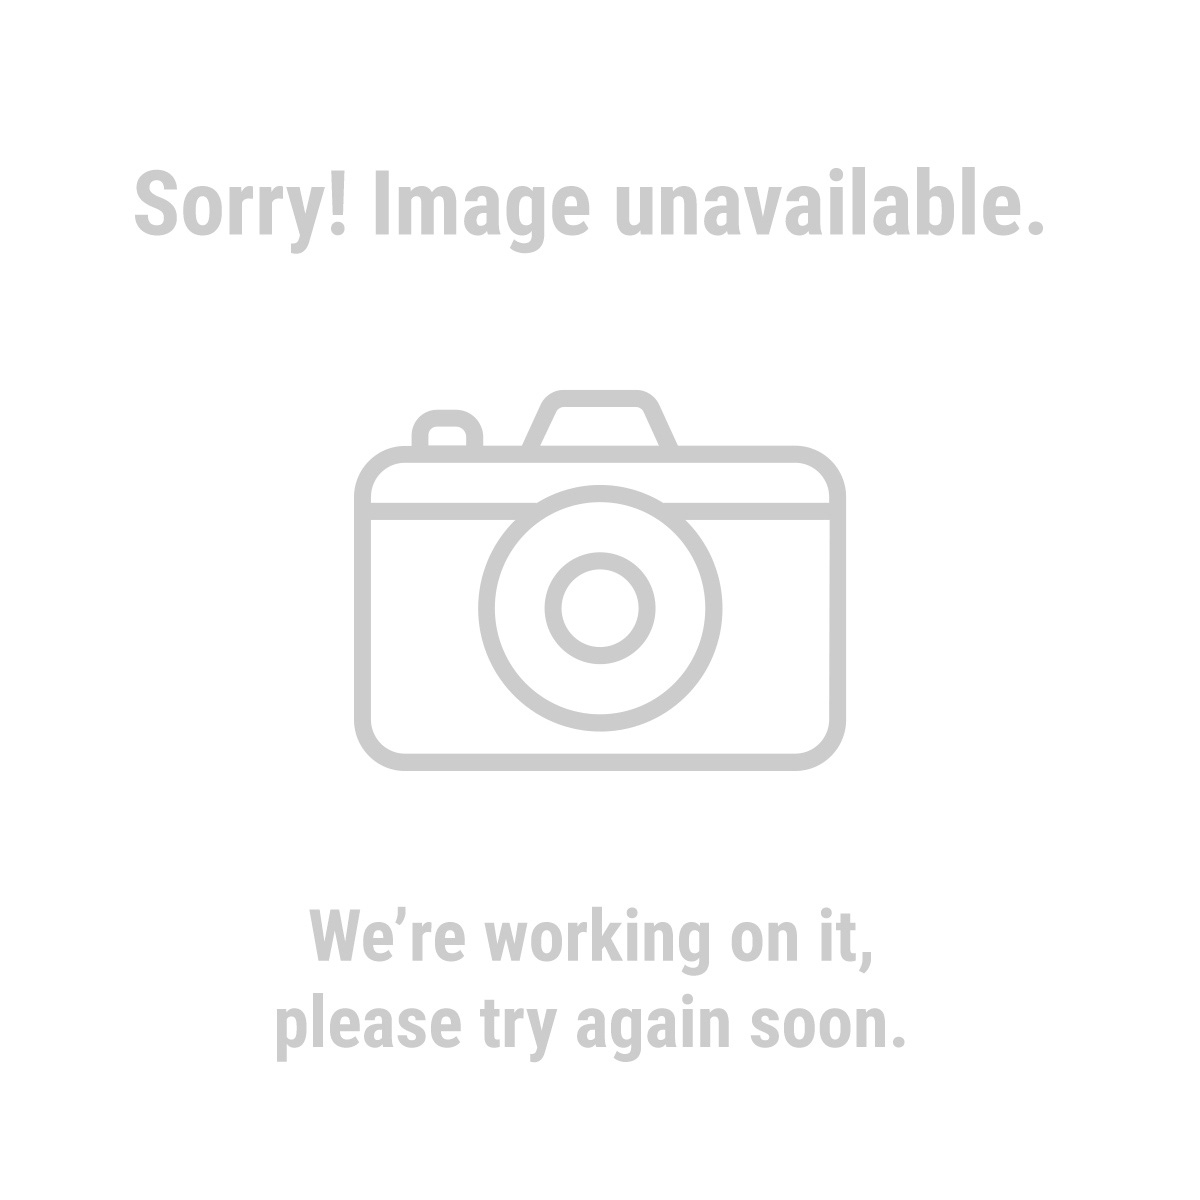 Predator Generators 68526 420cc, 6500 Watts Max/5500 Watts Rated Portable Generator - Certified for California